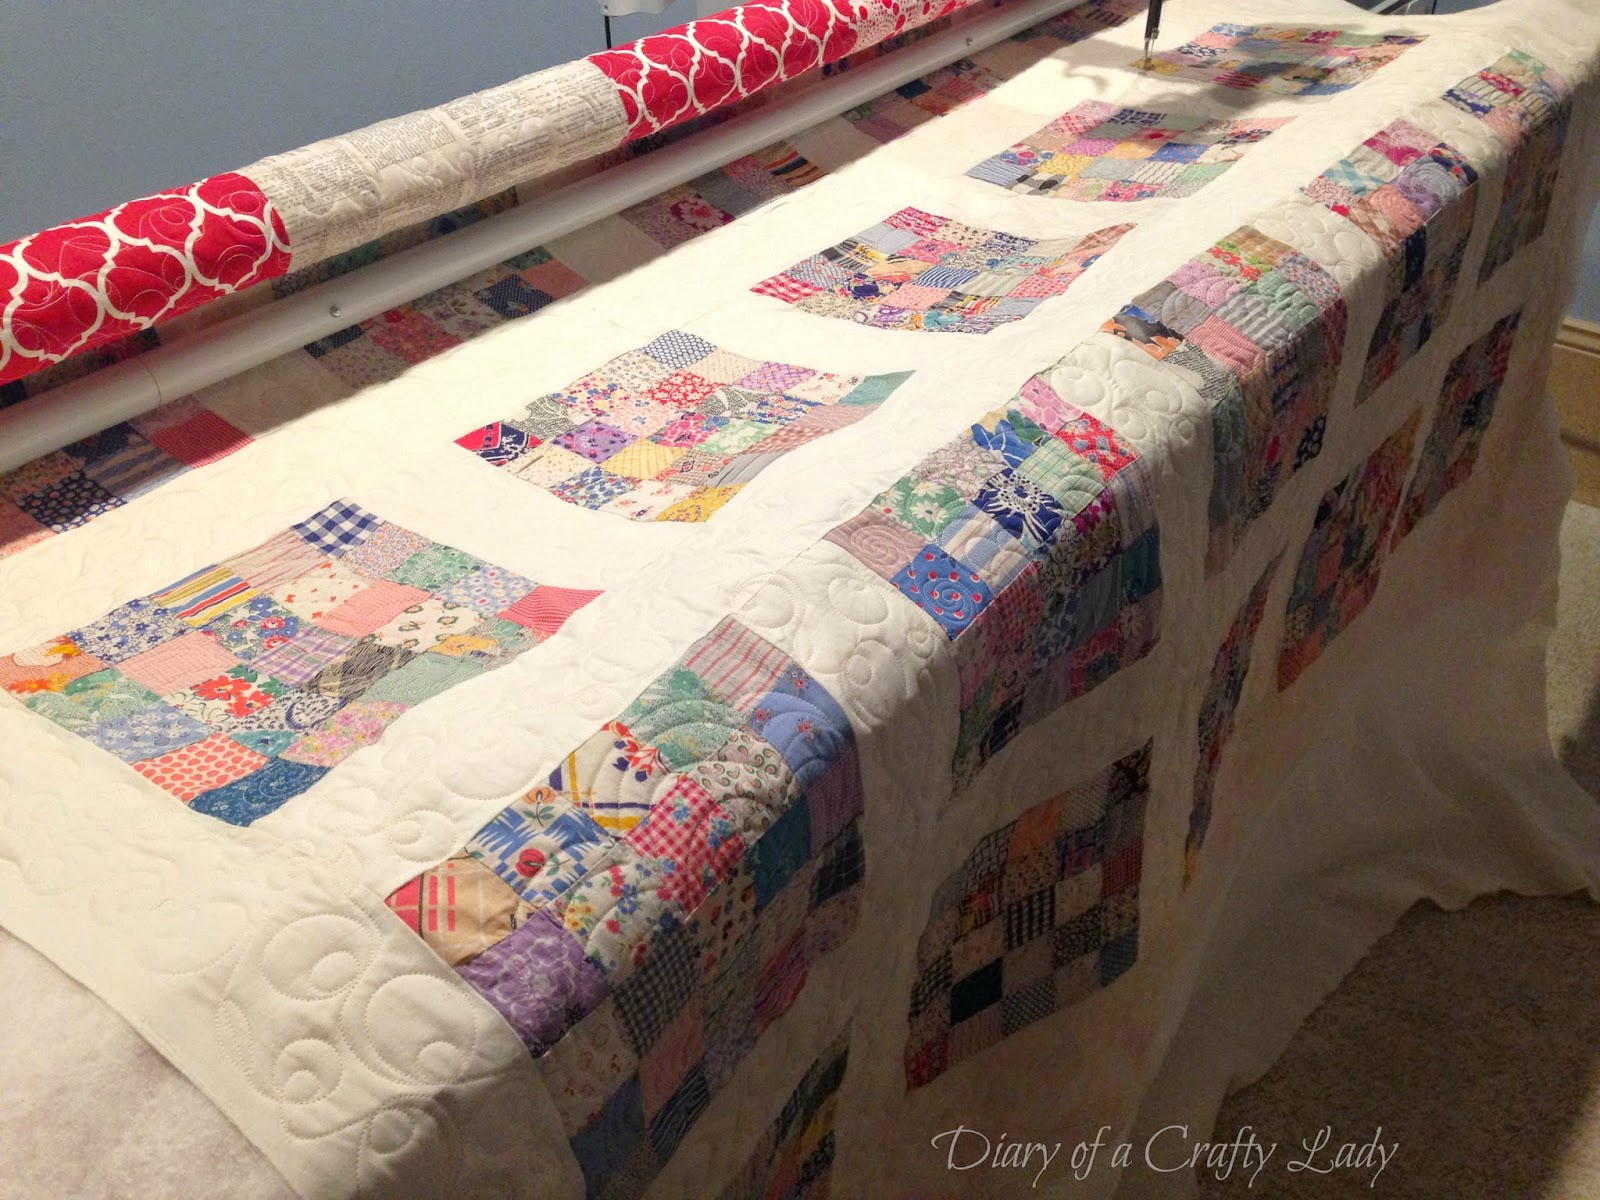 Diary of a Crafty Lady Antique Quilt Top Now a Finished Quilt